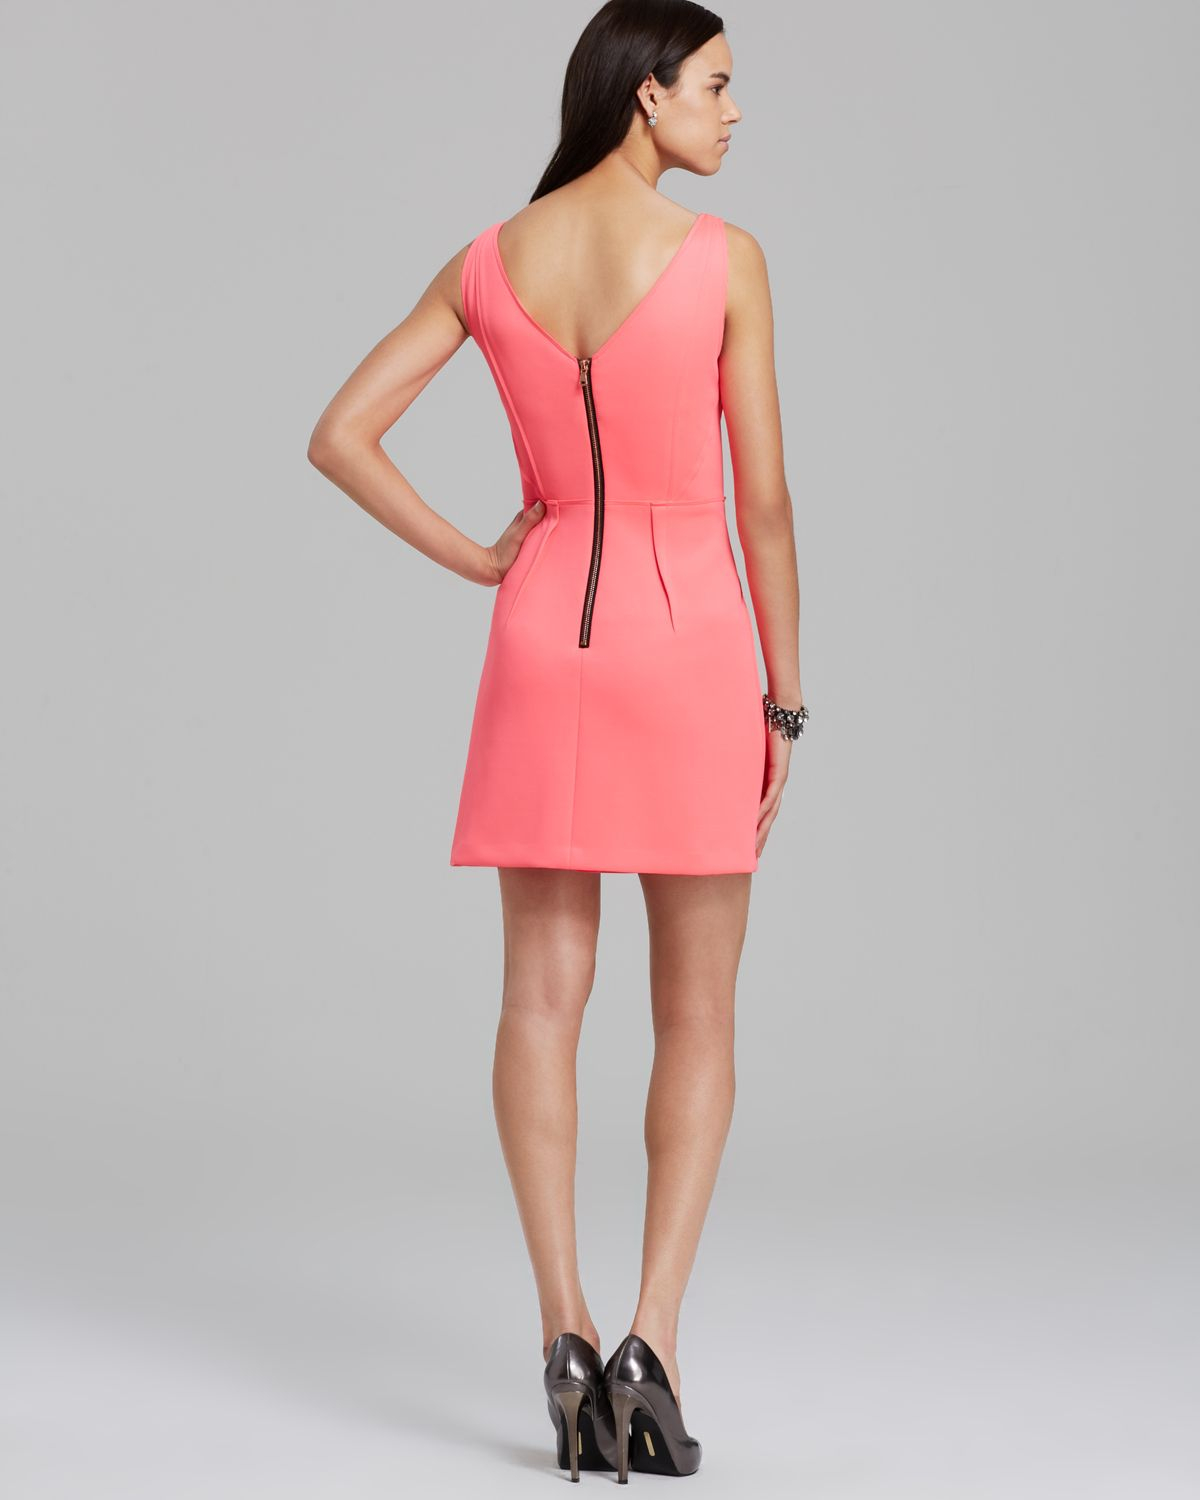 Milly Dress Tech Stretch Shift in Pink  Lyst